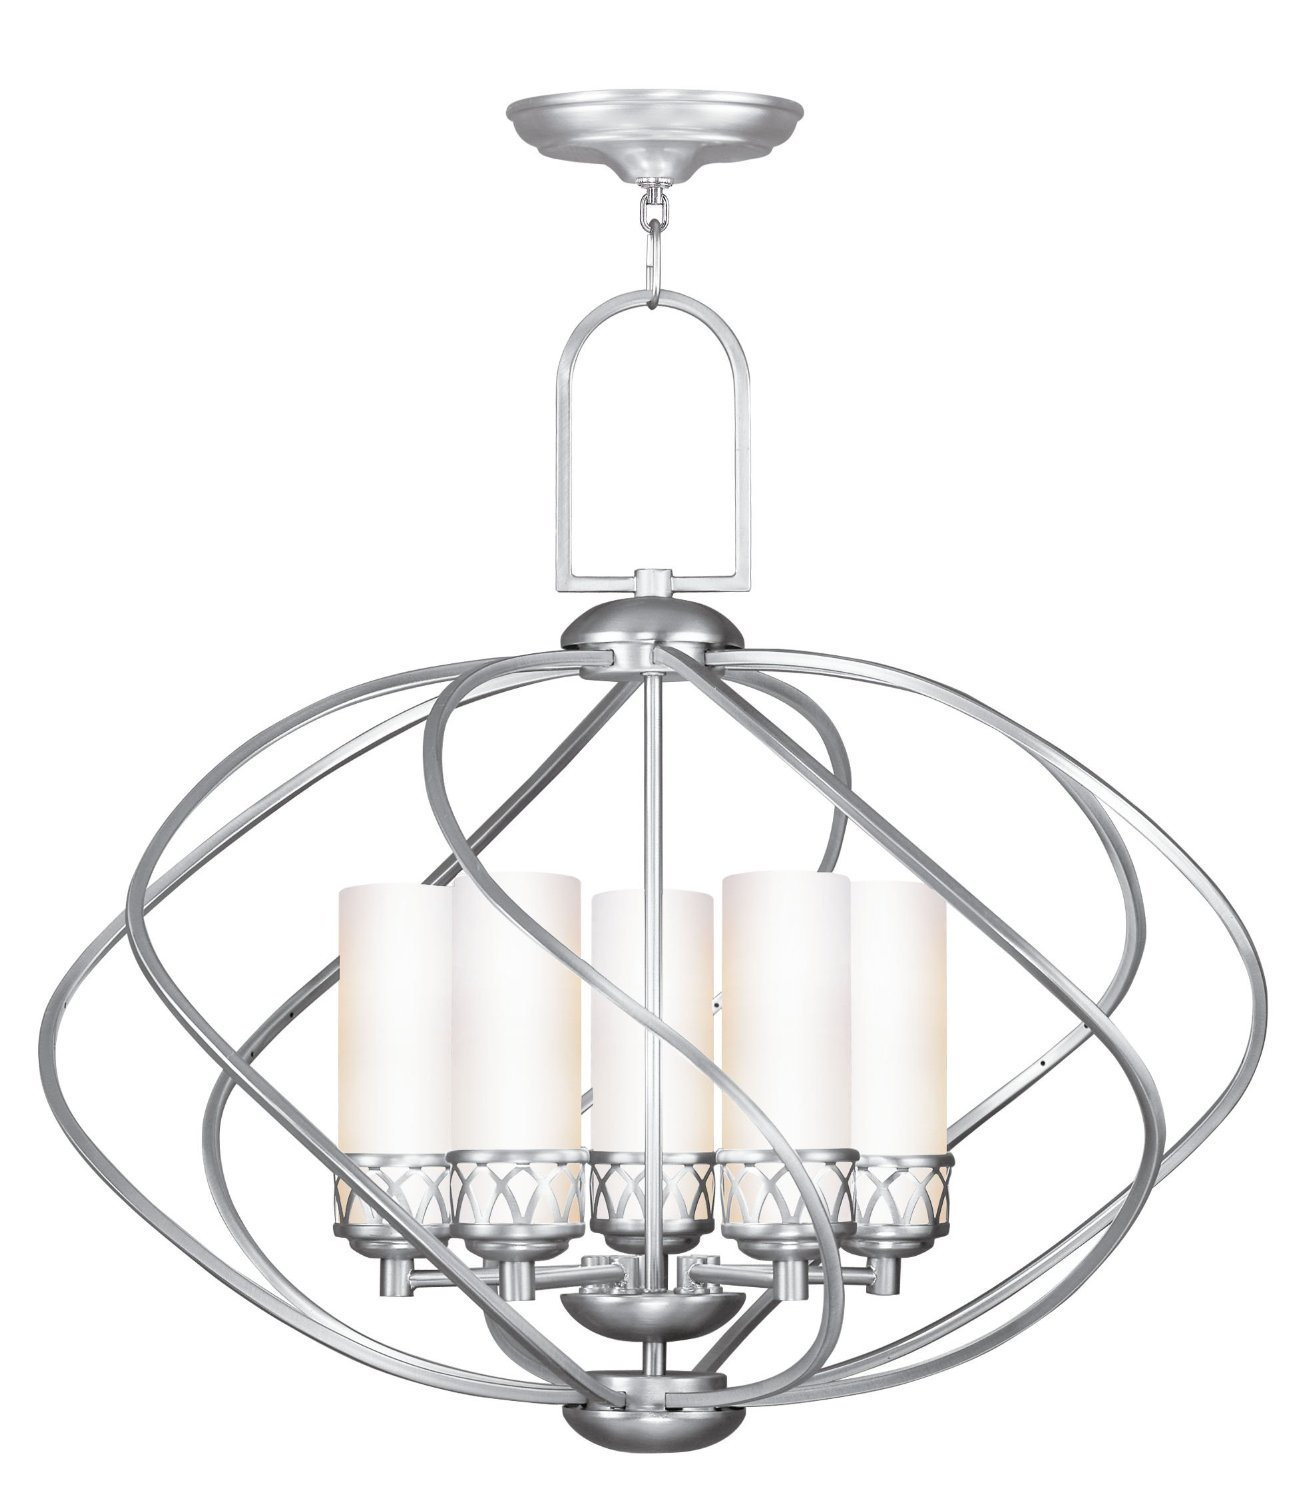 Wonderful Livex Lighting For Home Lighting Ideas: Beautiful Livex Lighting 4725 91 Chandelier With Hand Blown Satin White For Home Lighting Ideas